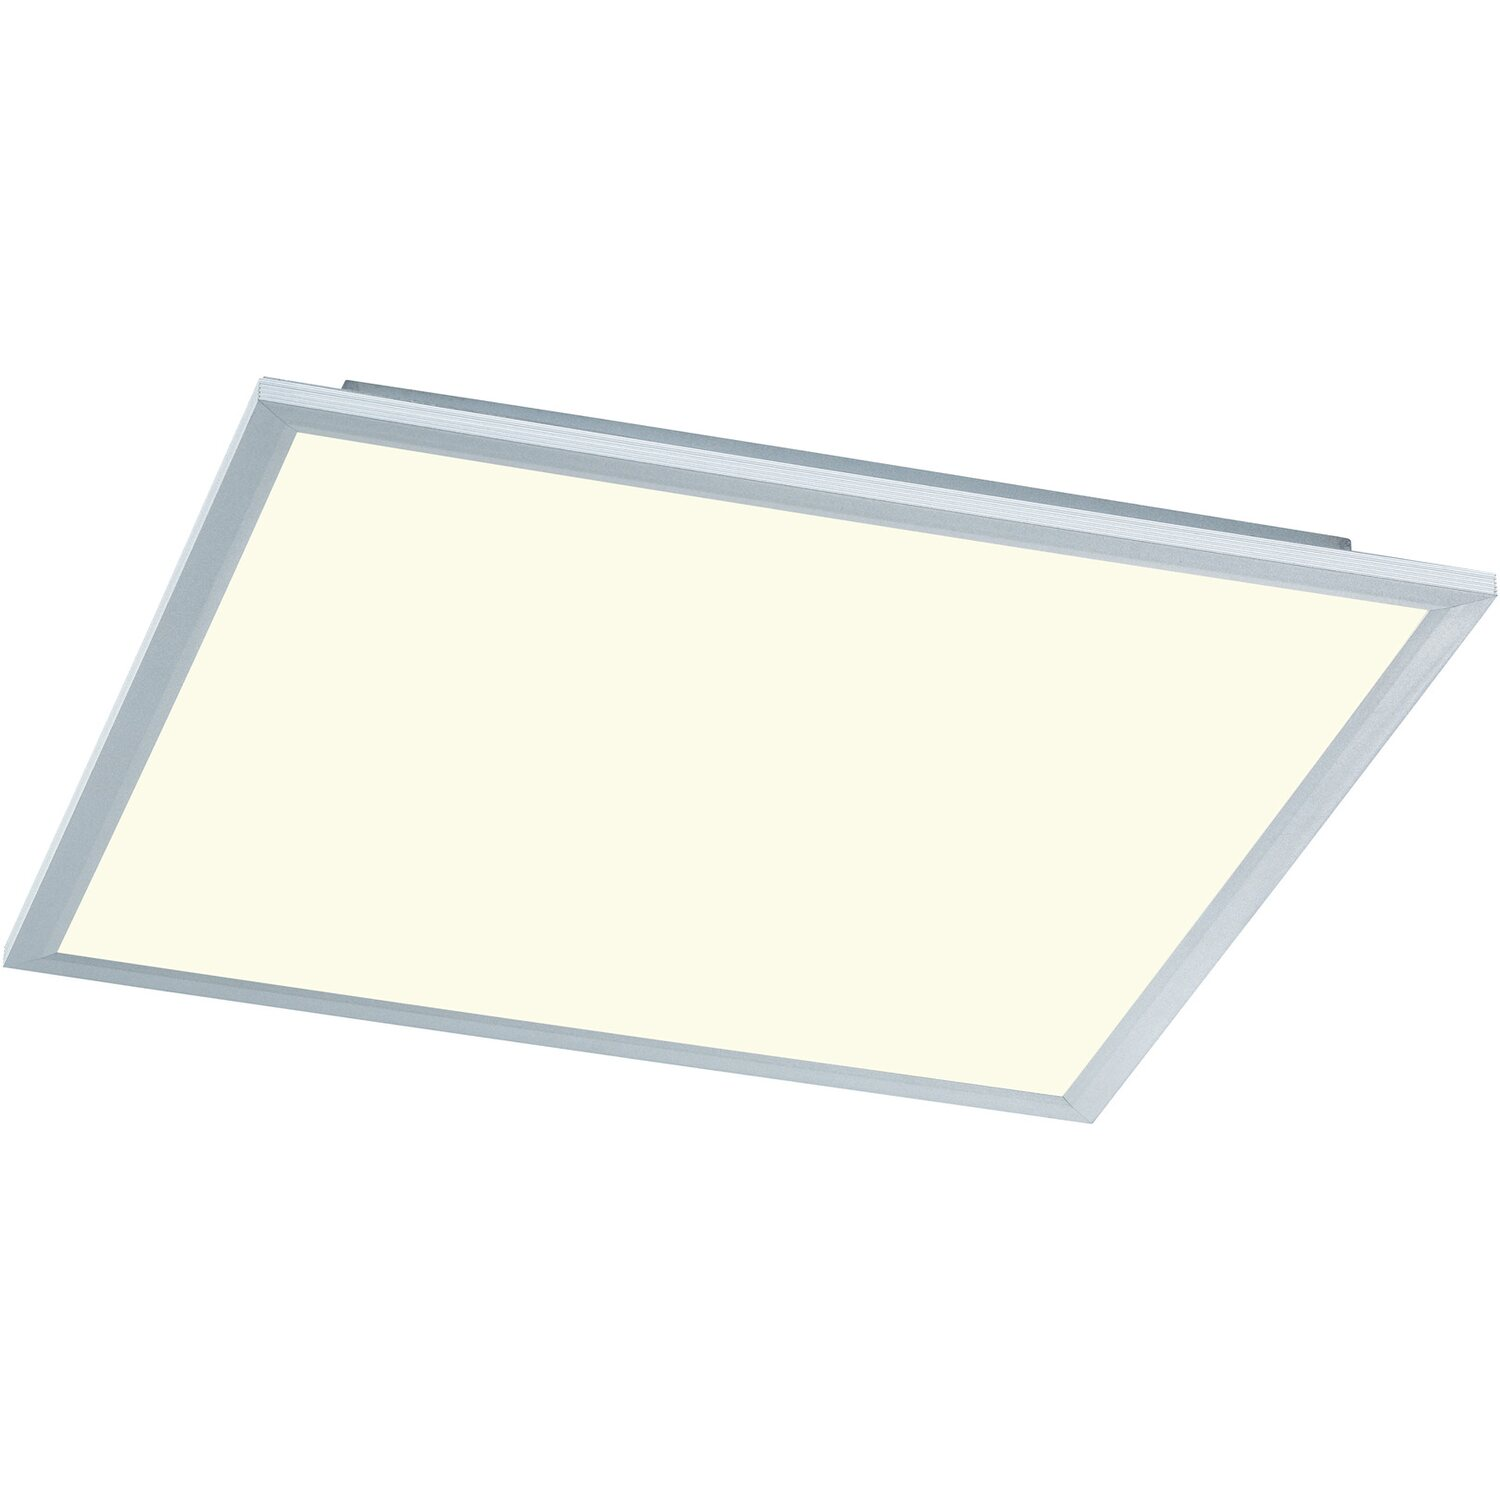 484963_3 Wunderbar Led Panel Rgb Dimmbar Dekorationen